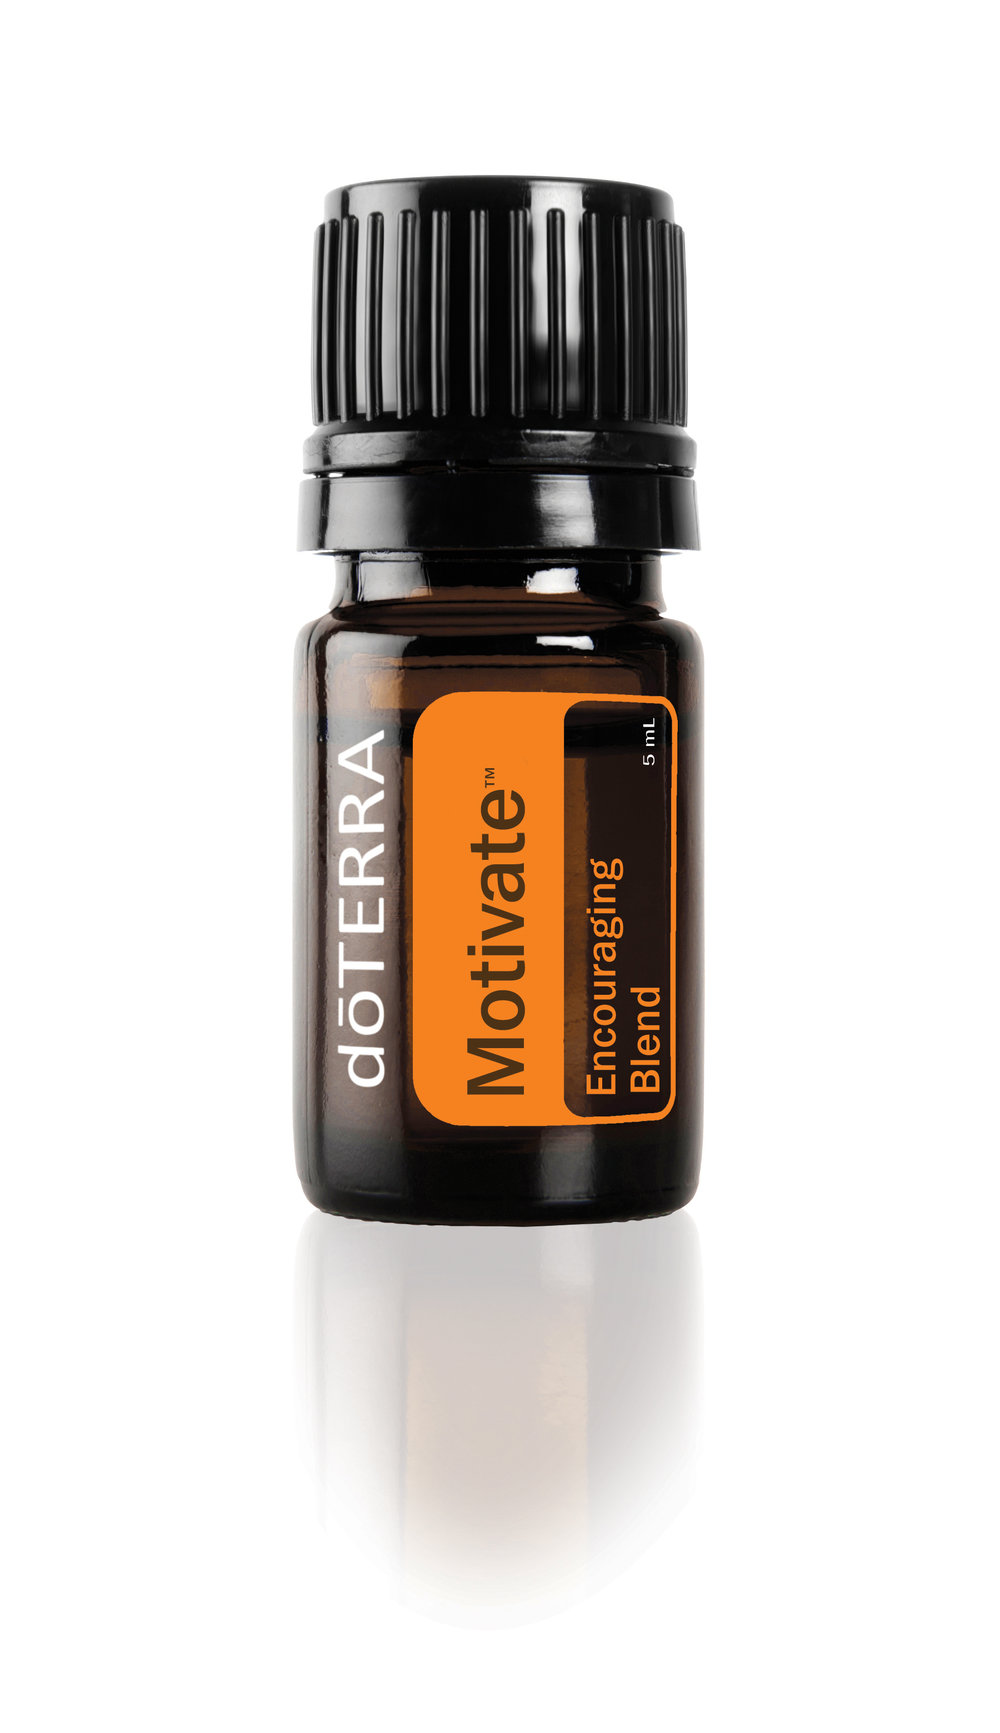 Feelings of confidence and courage will replace negative emotions like guilt and pessimism, with the doTERRA Motivate Encouraging Blend of mint and citrus essential oils. -